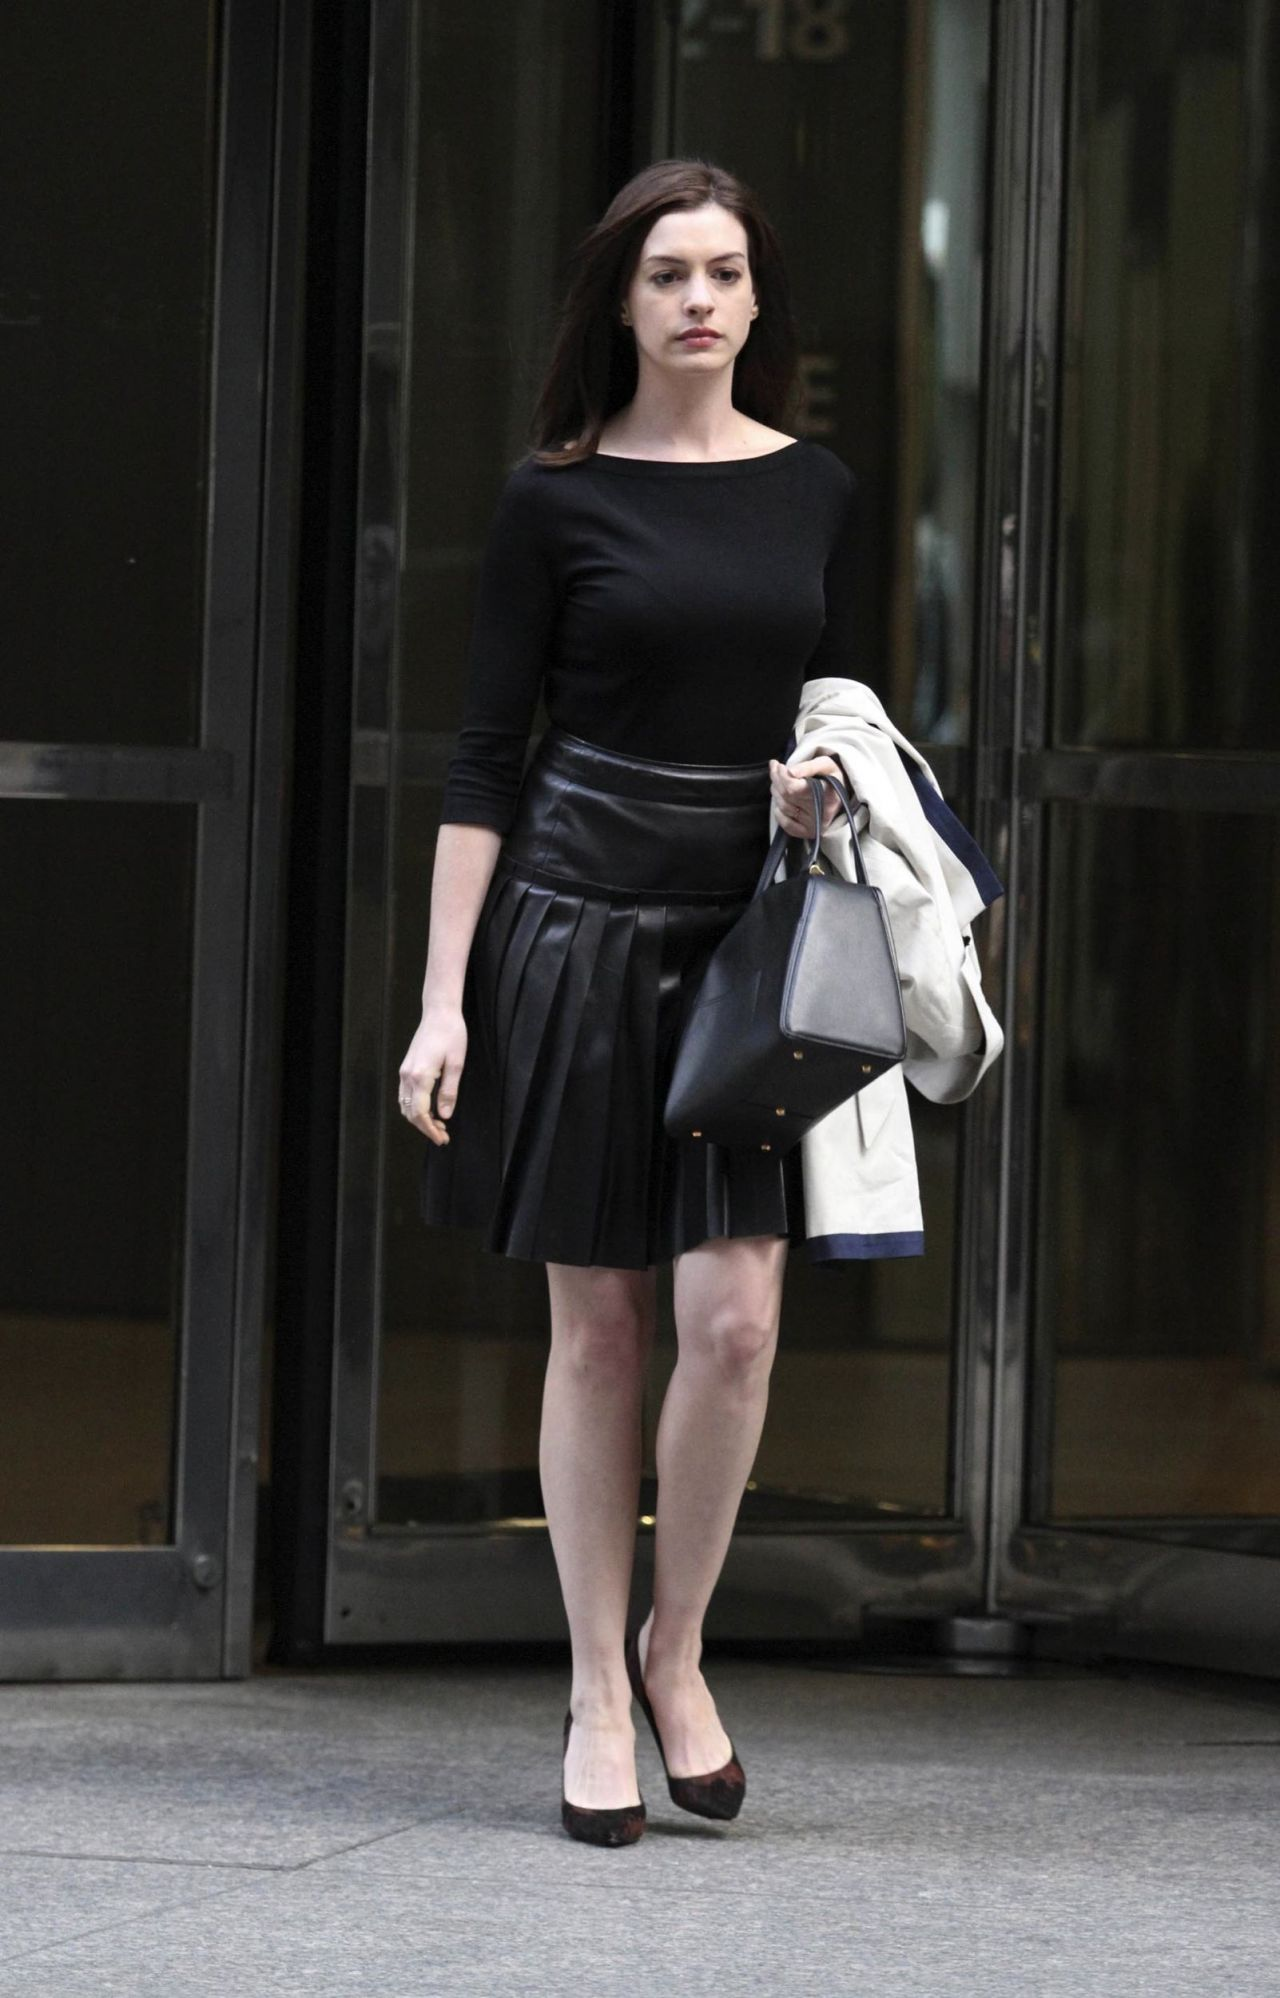 Anne hathaway in late night with jimmy fallon 2012 - 5 6